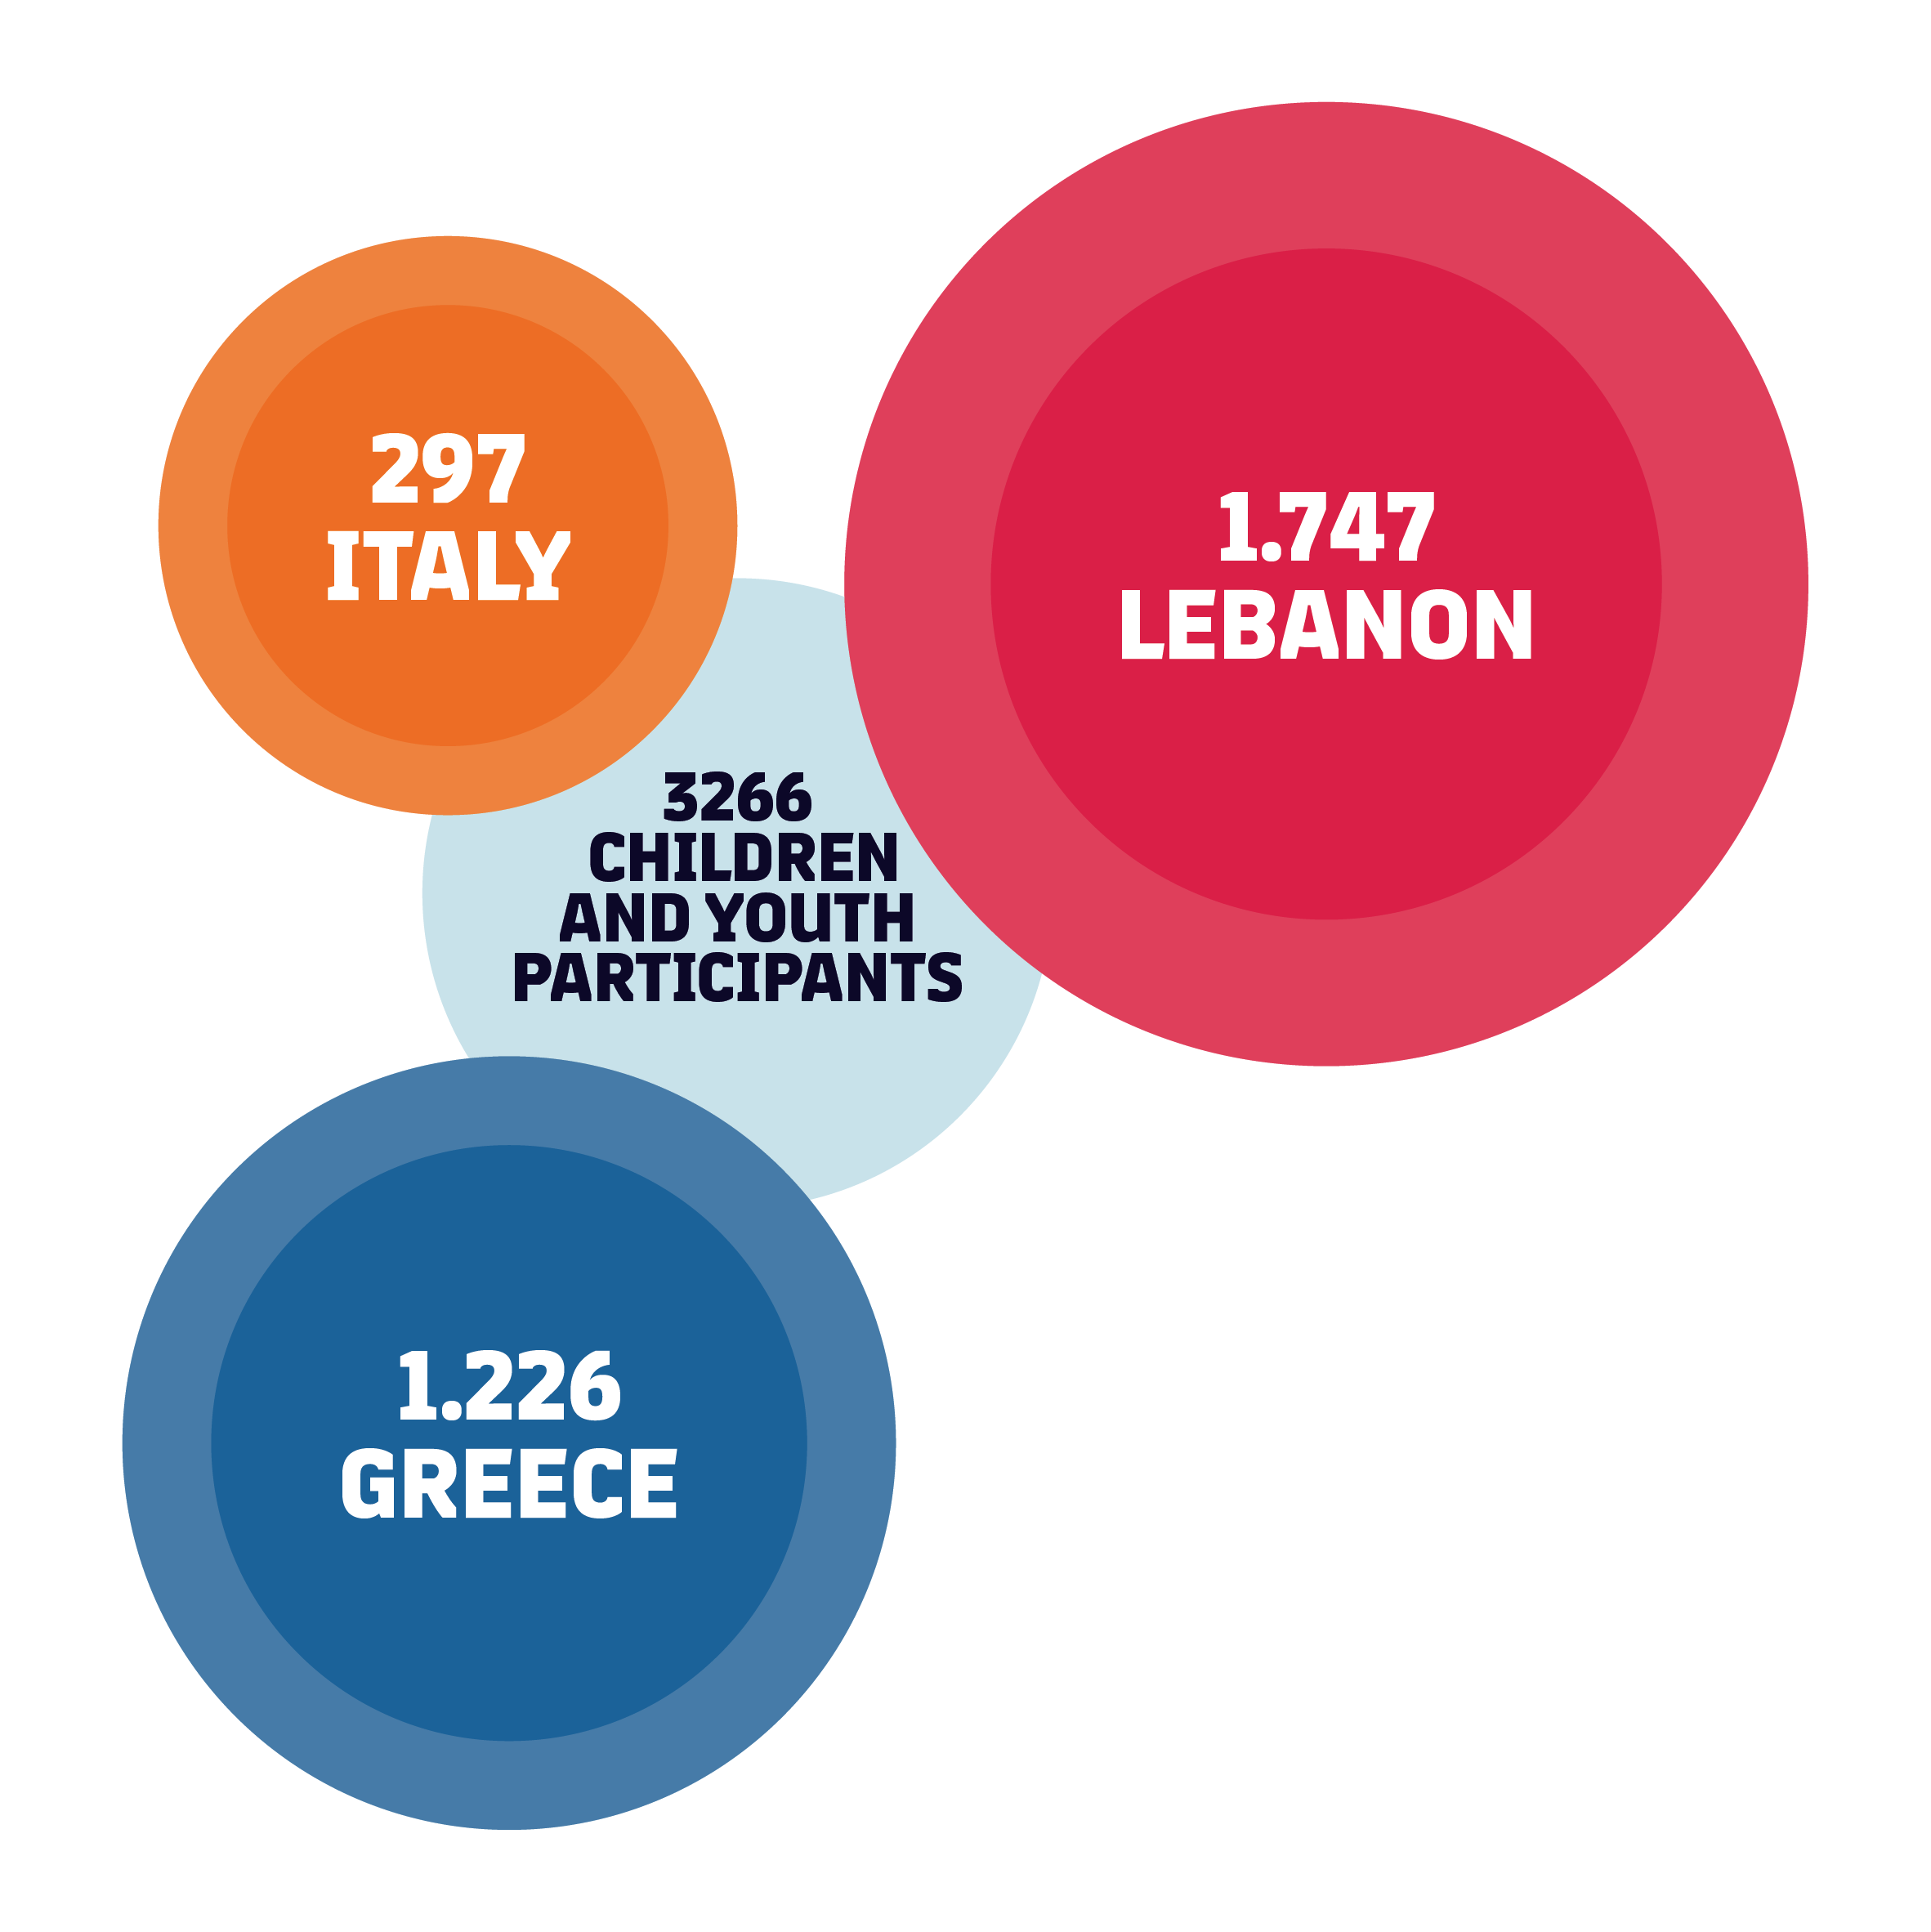 A total of 3,266 children have participated: 297 Italy, 1,747 Lebanon, 1,226 Greece